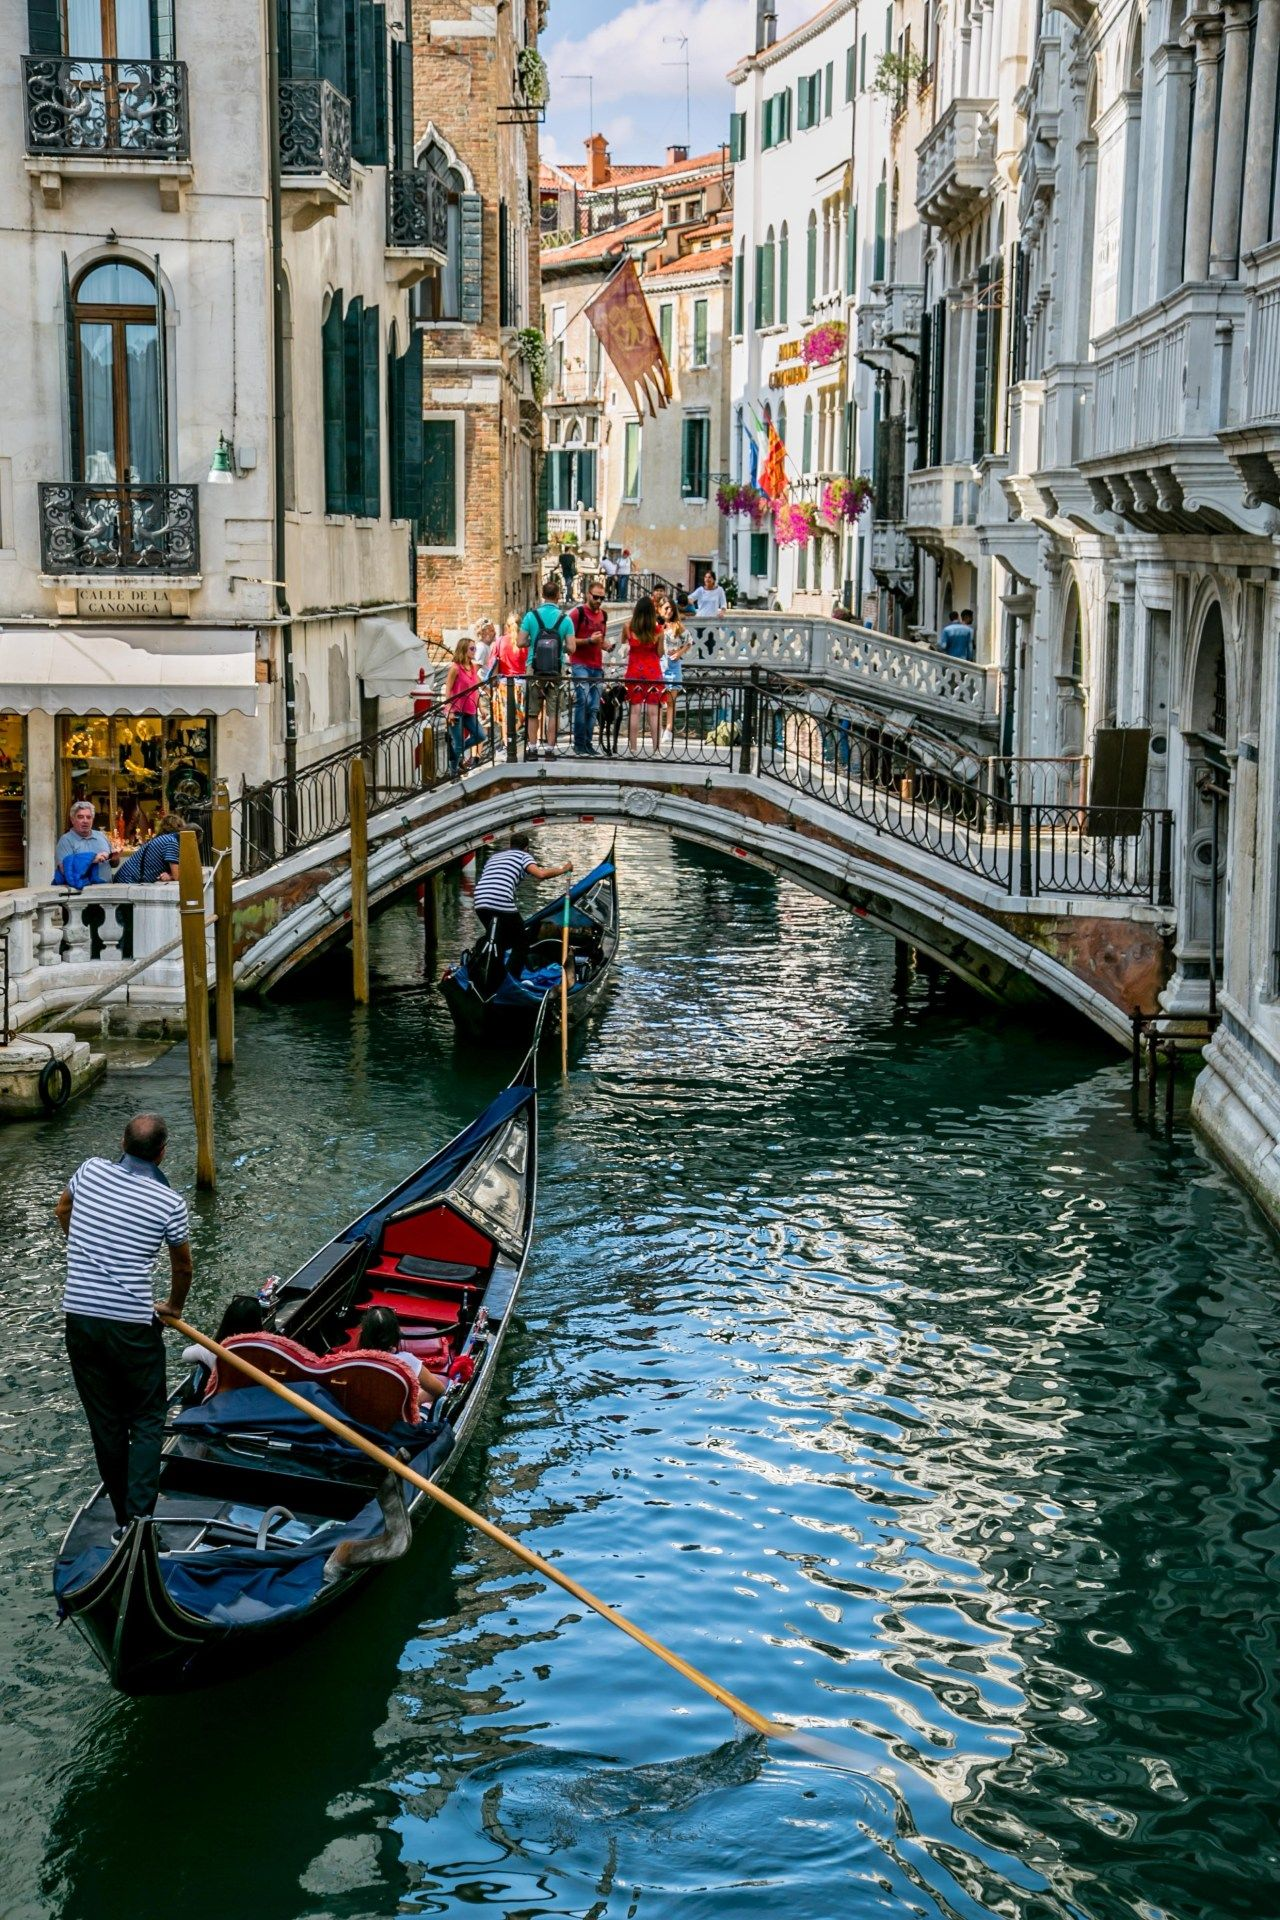 Venice: A guide to Italy's canal city Venice Italy Restaurants, Venice Italy Hotels, Venice Things To Do, Things To Do In Italy, Venice Travel, Italy Travel, Venice Canals, Gondola Venice, Venice Photography